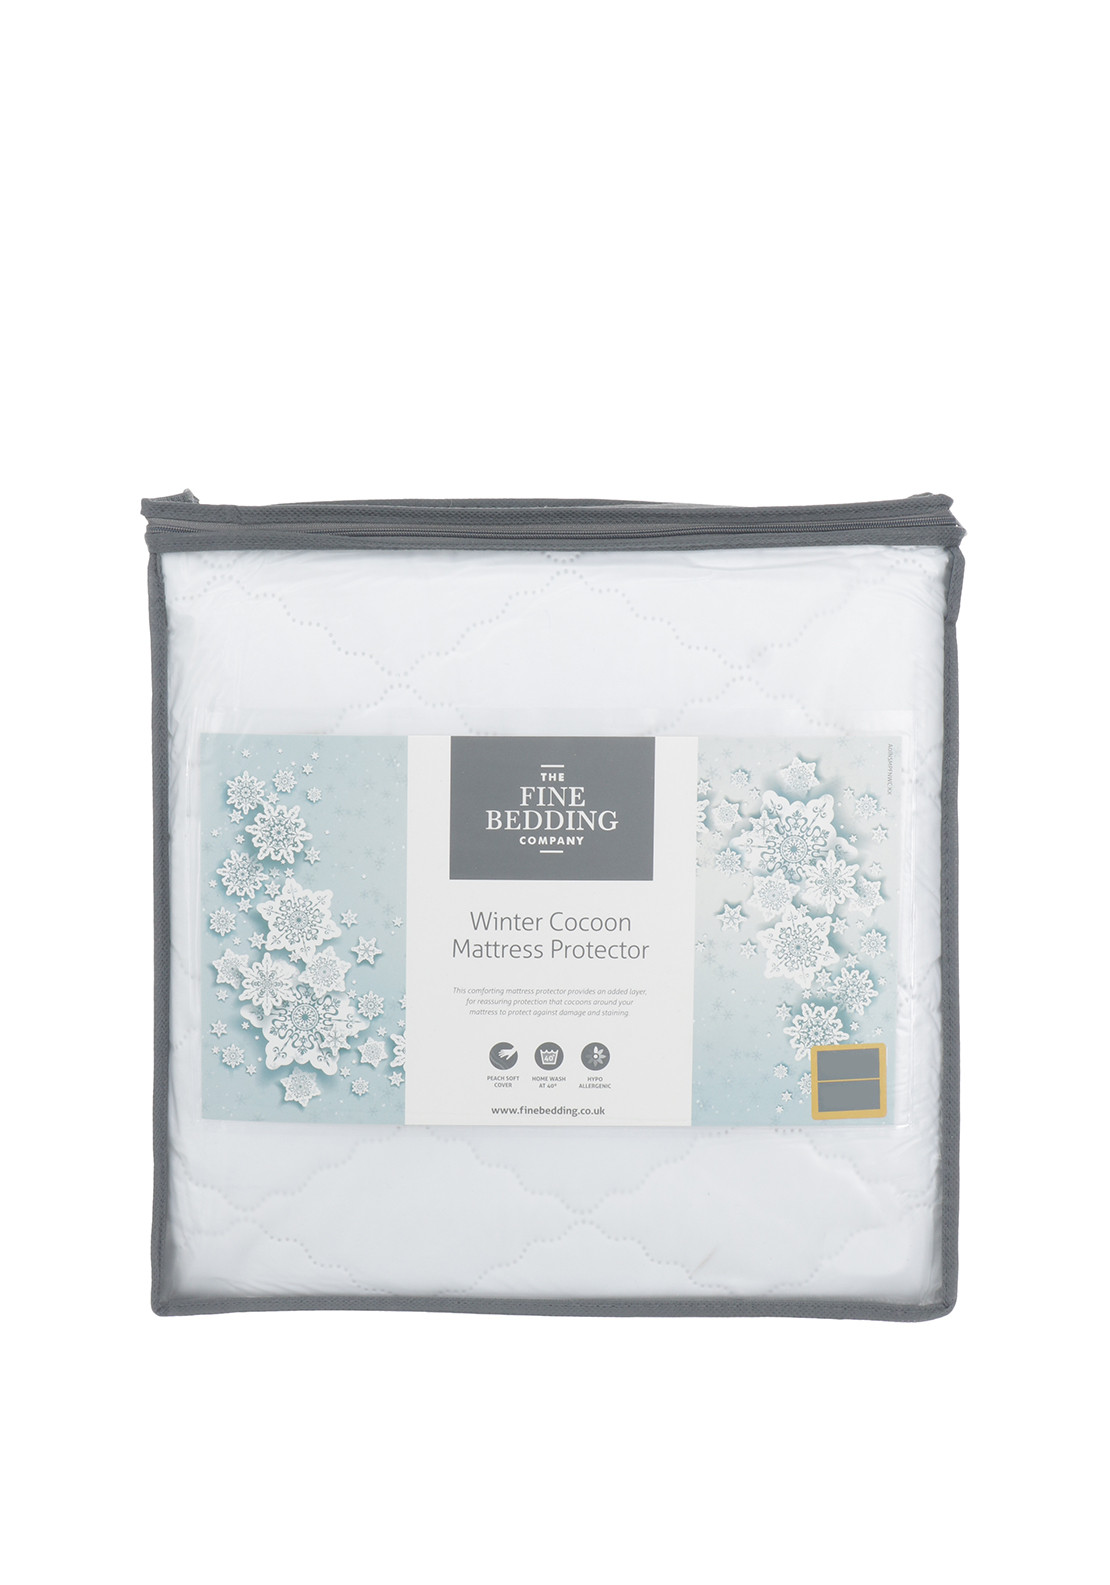 The Fine Bedding Company, Winter Cocoon Mattress Protector